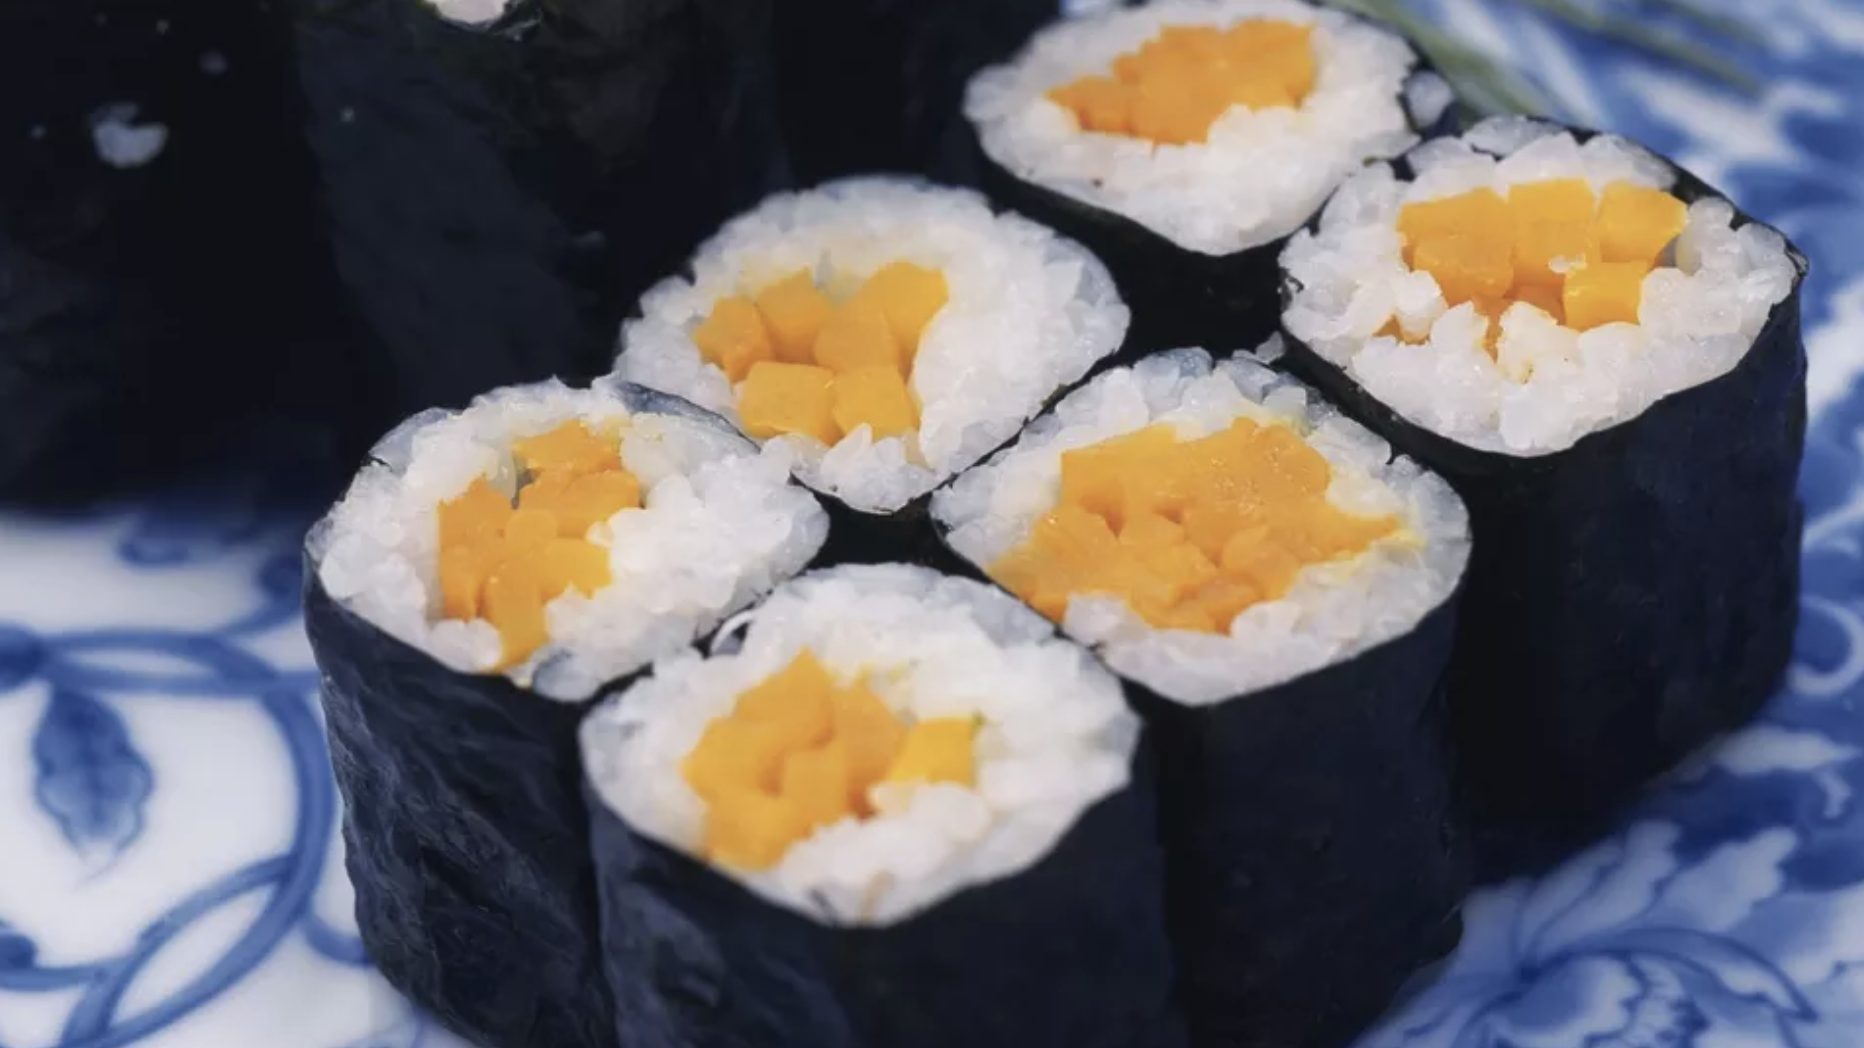 8. Pickled Daikon Sushi Roll (Oshiko Maki)